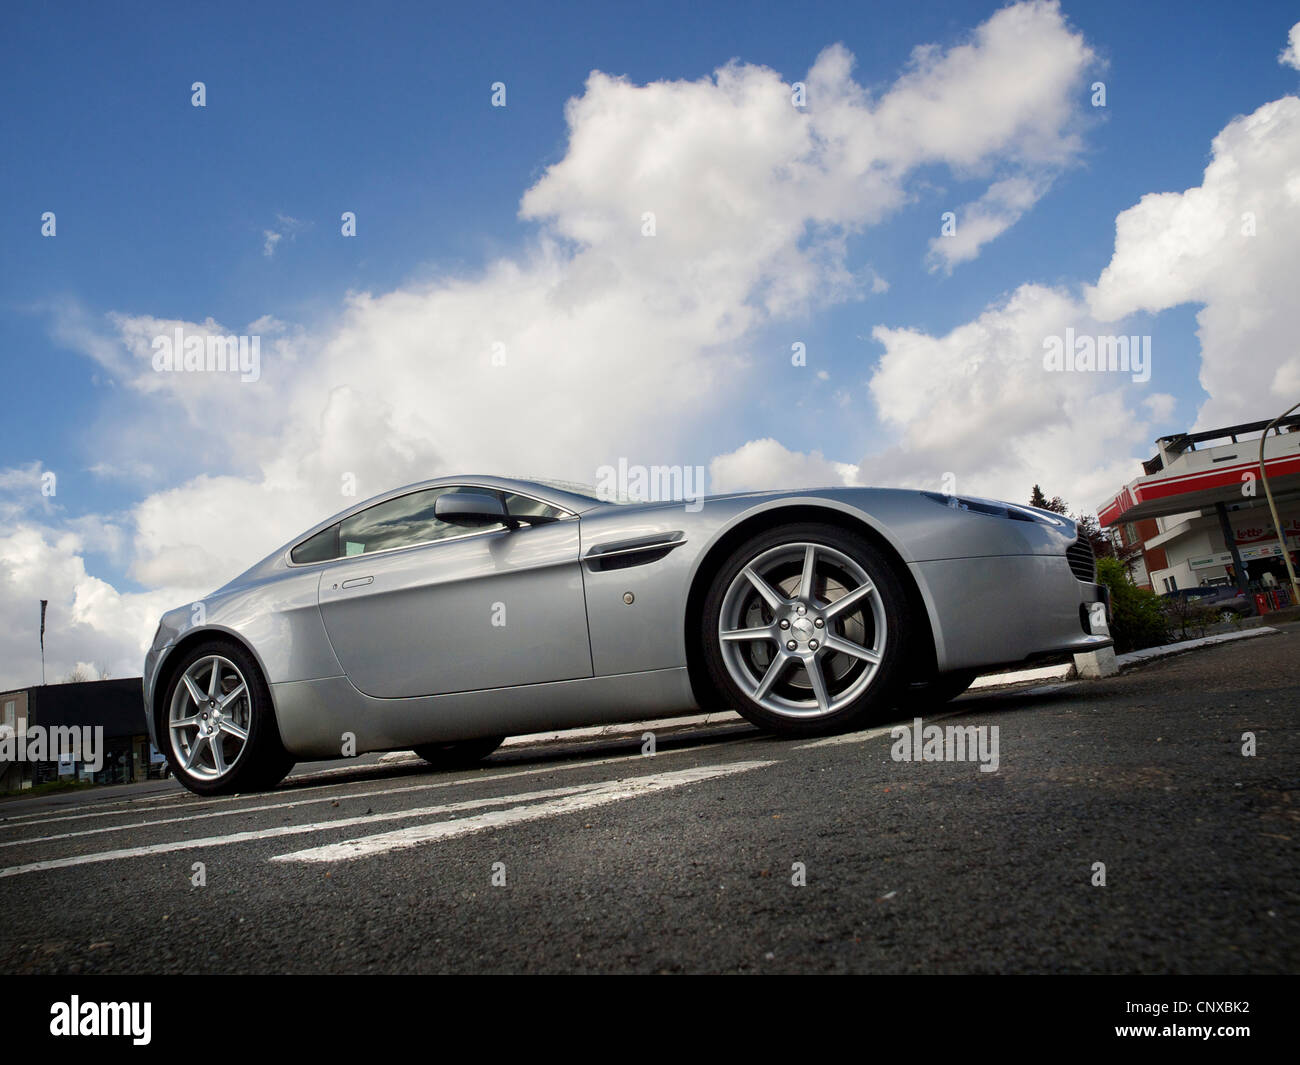 Aston Martin luxury sportscar parked with dramatic sky in the background - Stock Image